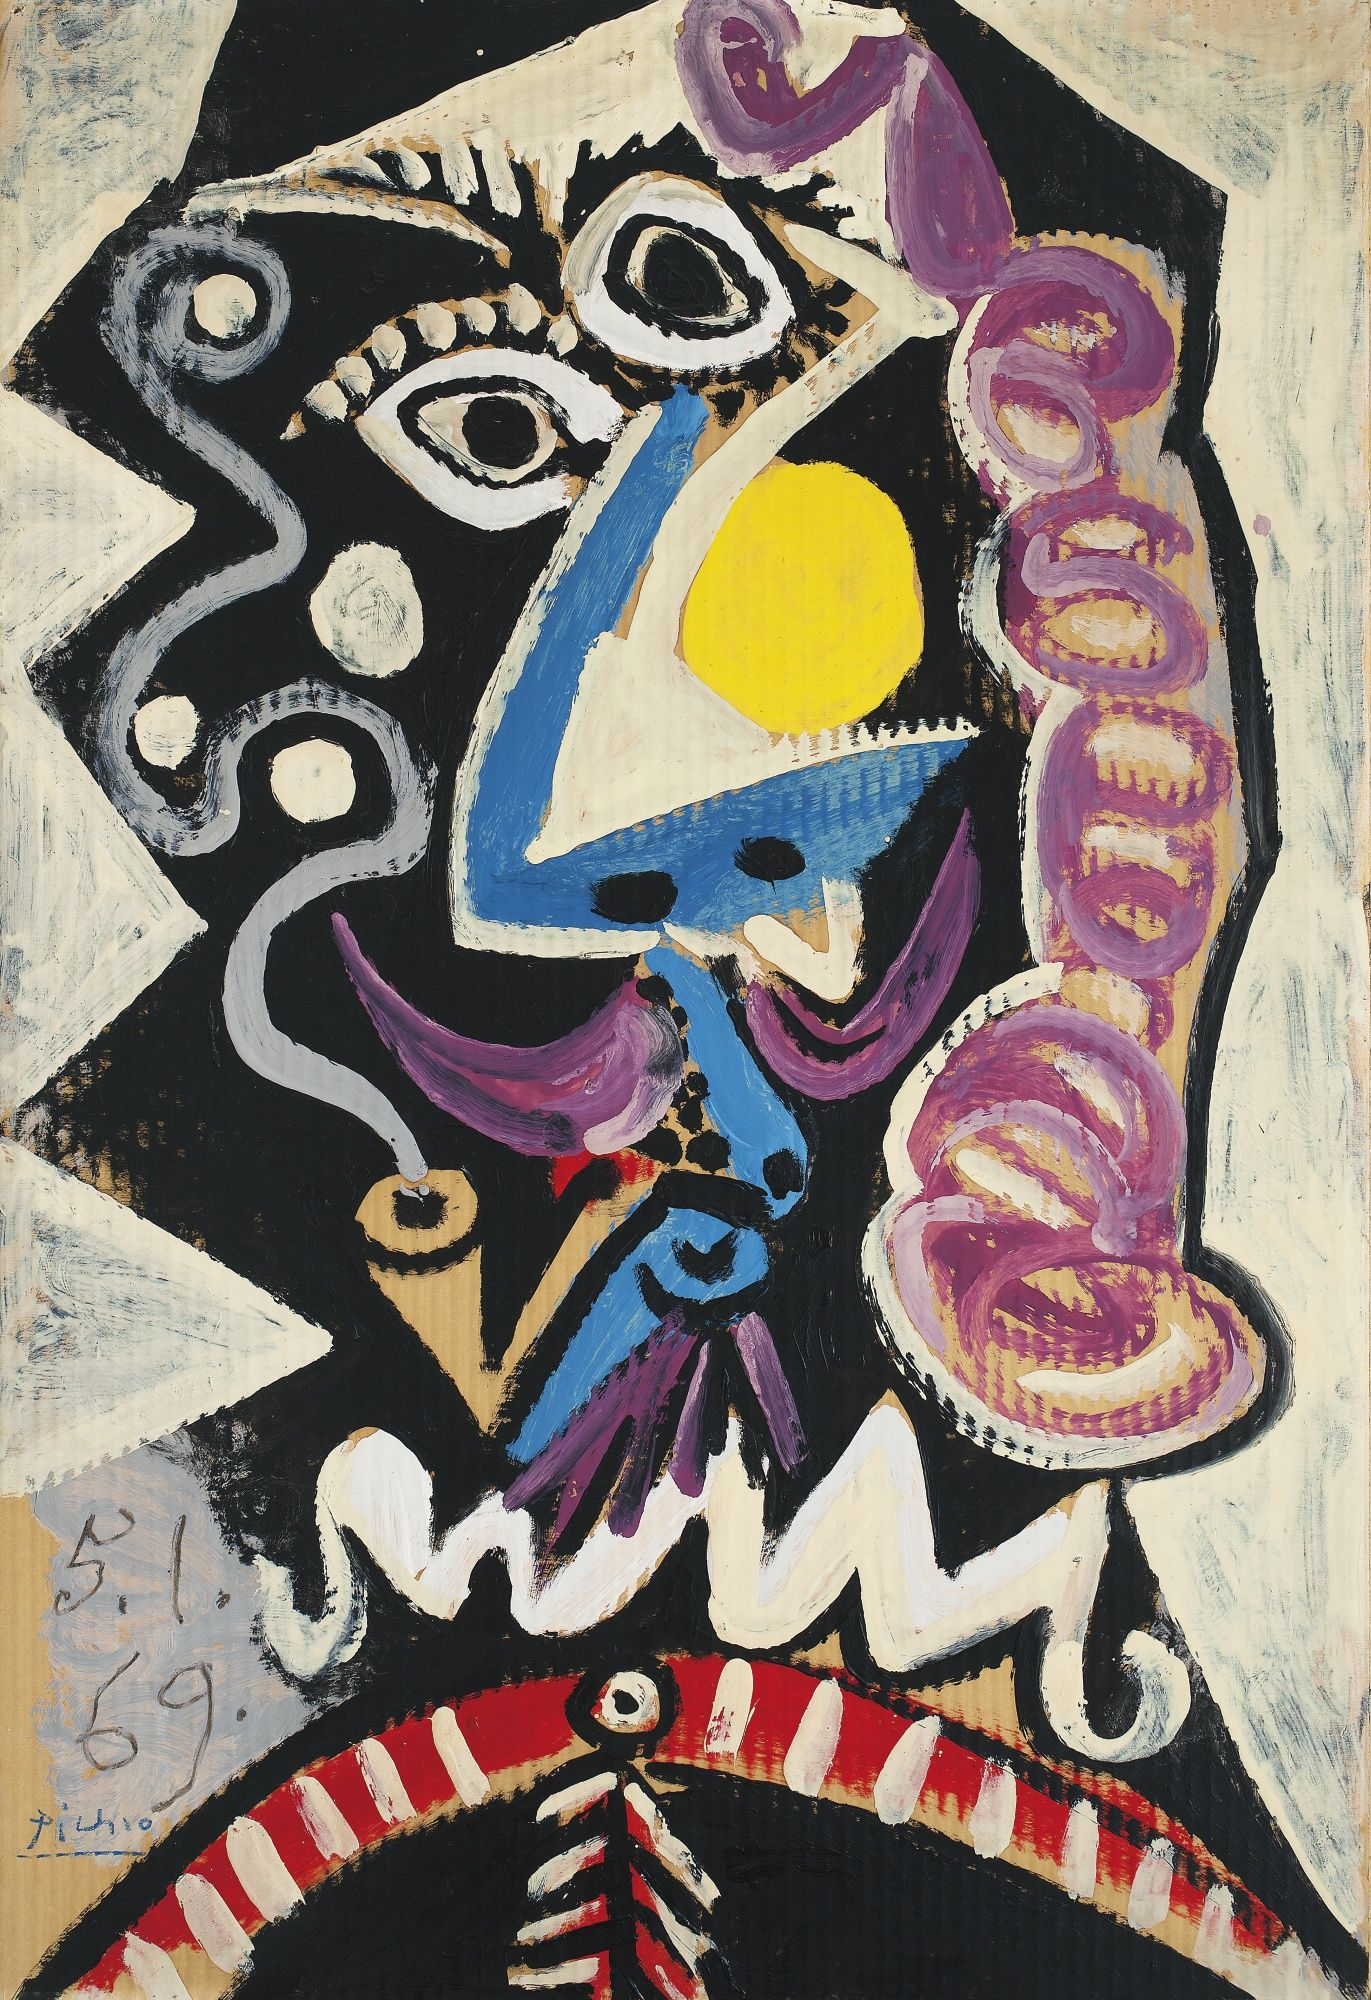 essays on pablo picasso Free essay: pablo picasso was born in the early 1880s into a family with artistic roots from this, he was able to draw much inspiration and opportunities to.